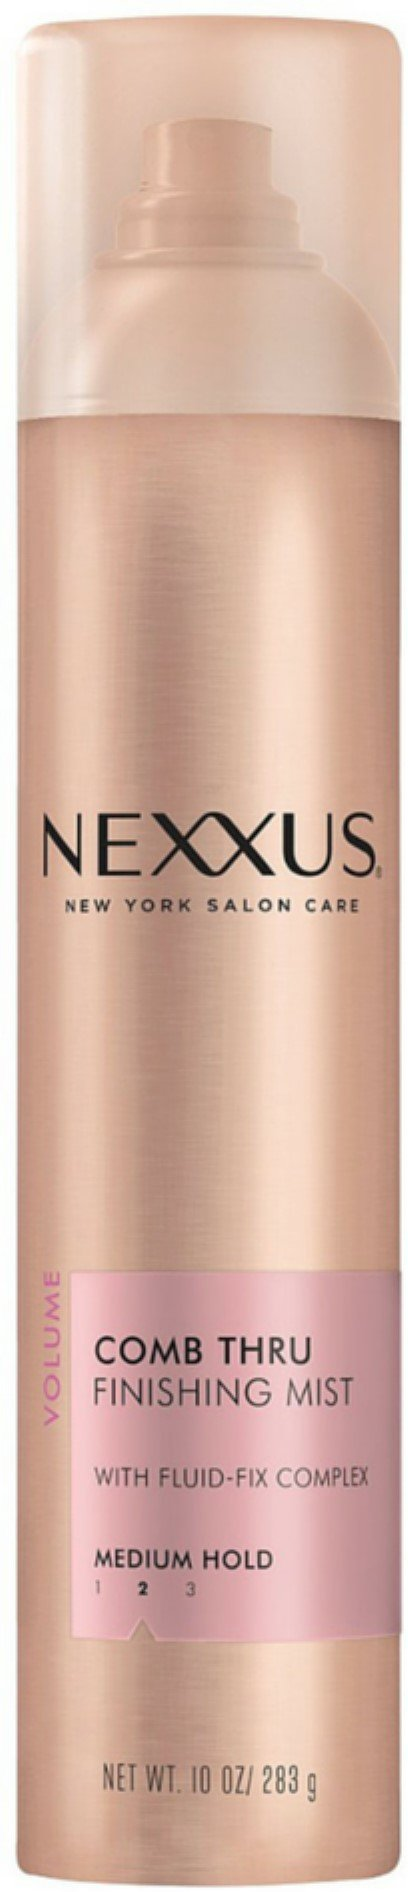 NEXXUS COMB THRU Natural Hold Design and Finishing Mist 10 oz (Pack of 12)